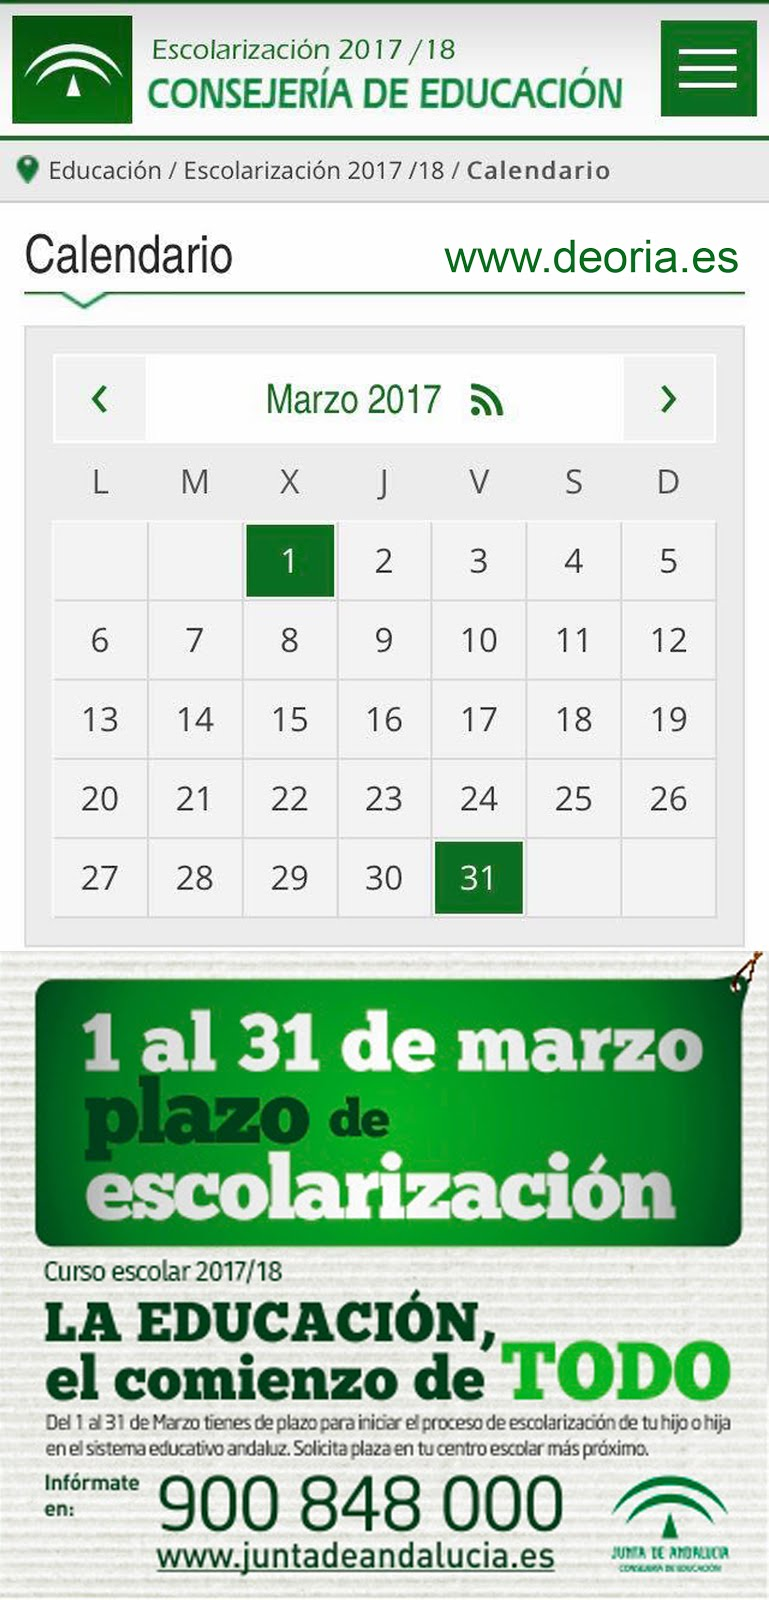 Calendario escolarización 2017/18